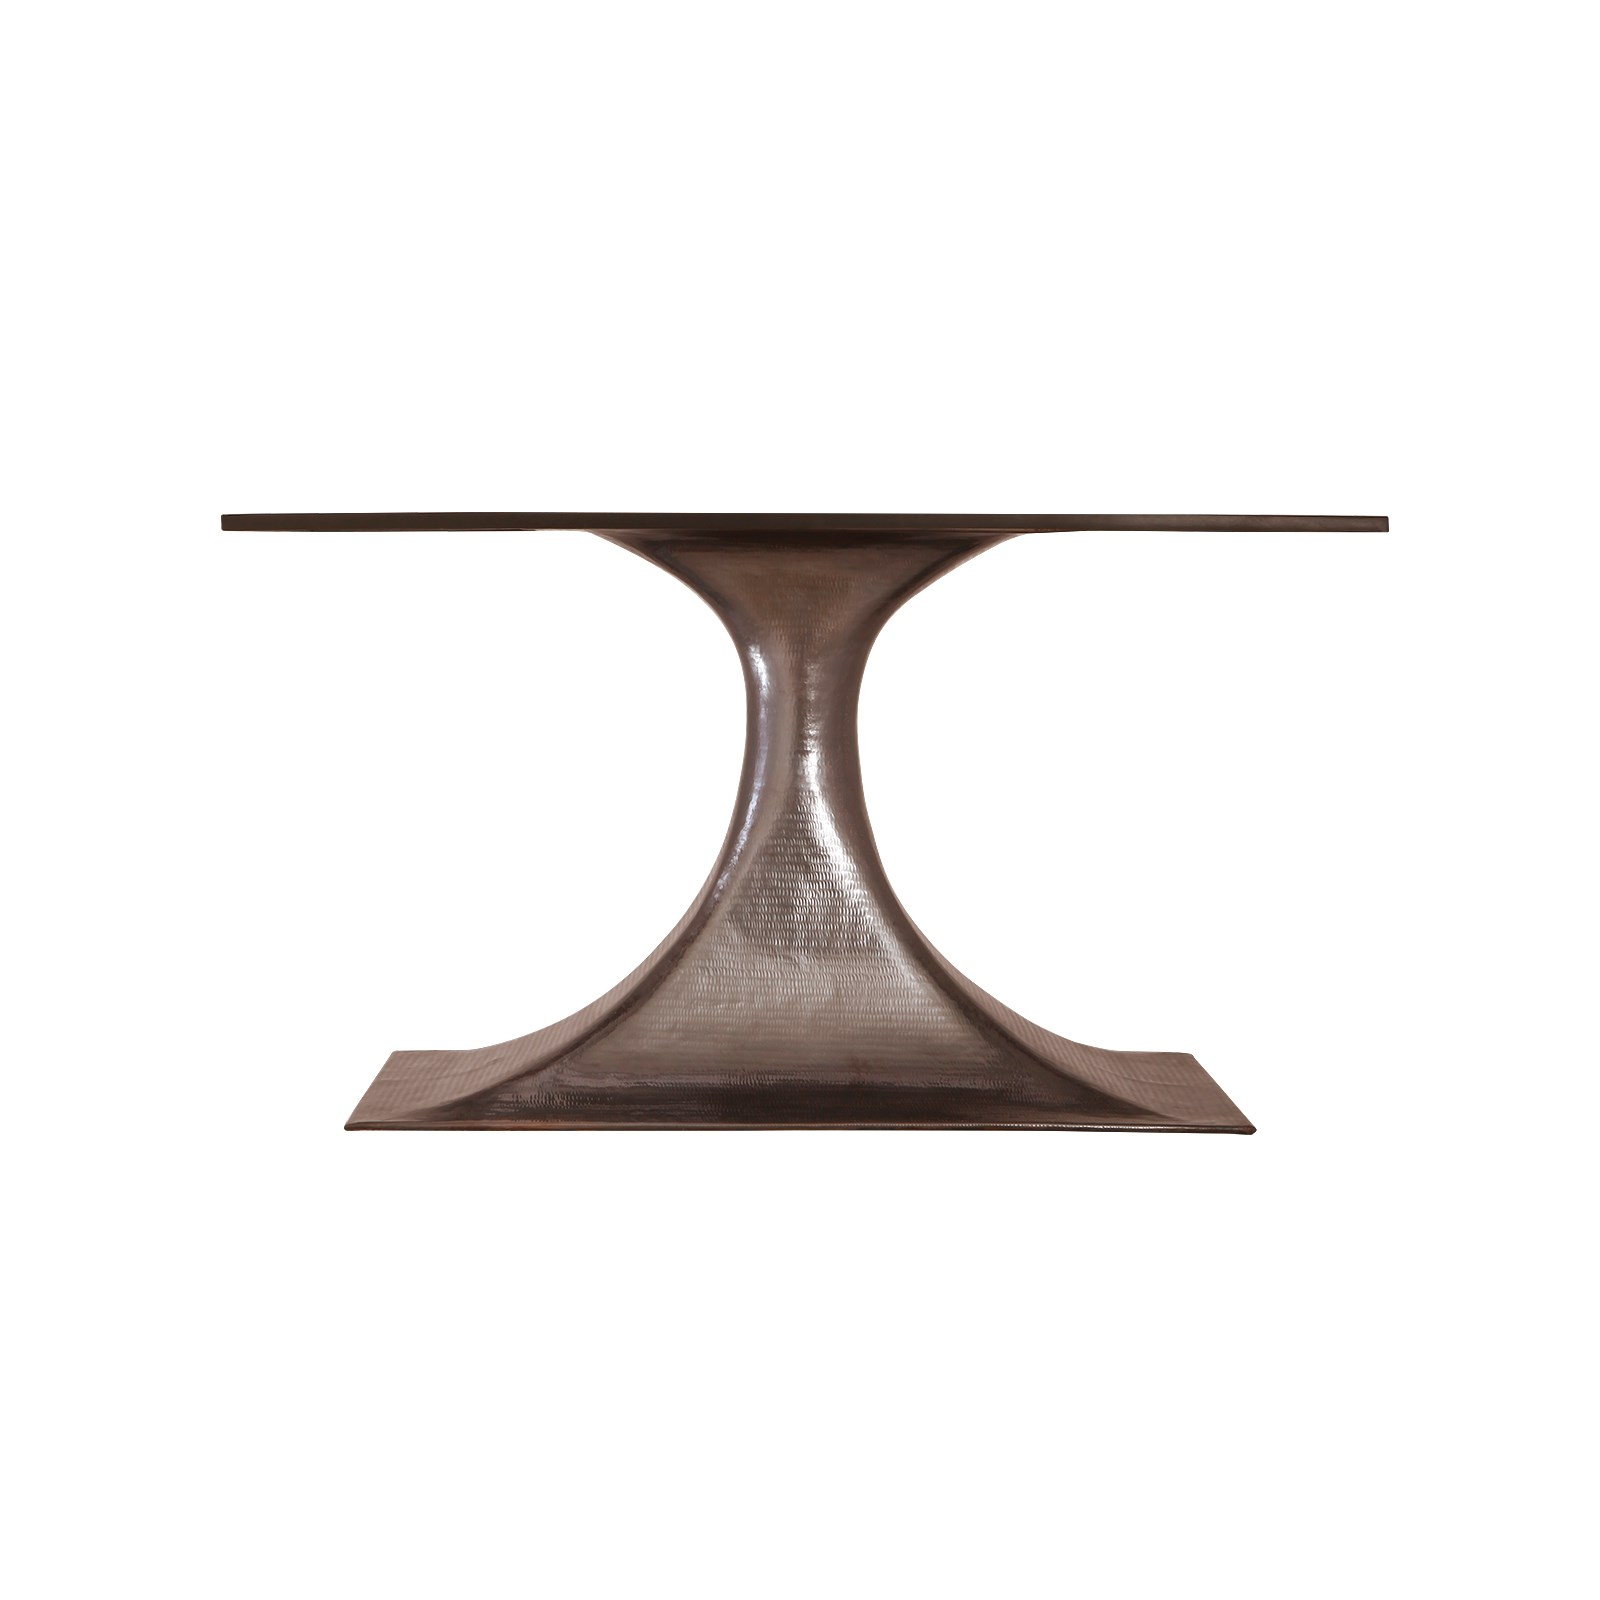 Stockholm Bronze Oval Dining Table Base Pairs with 95  : STO 380 804 Blg from www.bungalow5.com size 1600 x 1600 jpeg 92kB